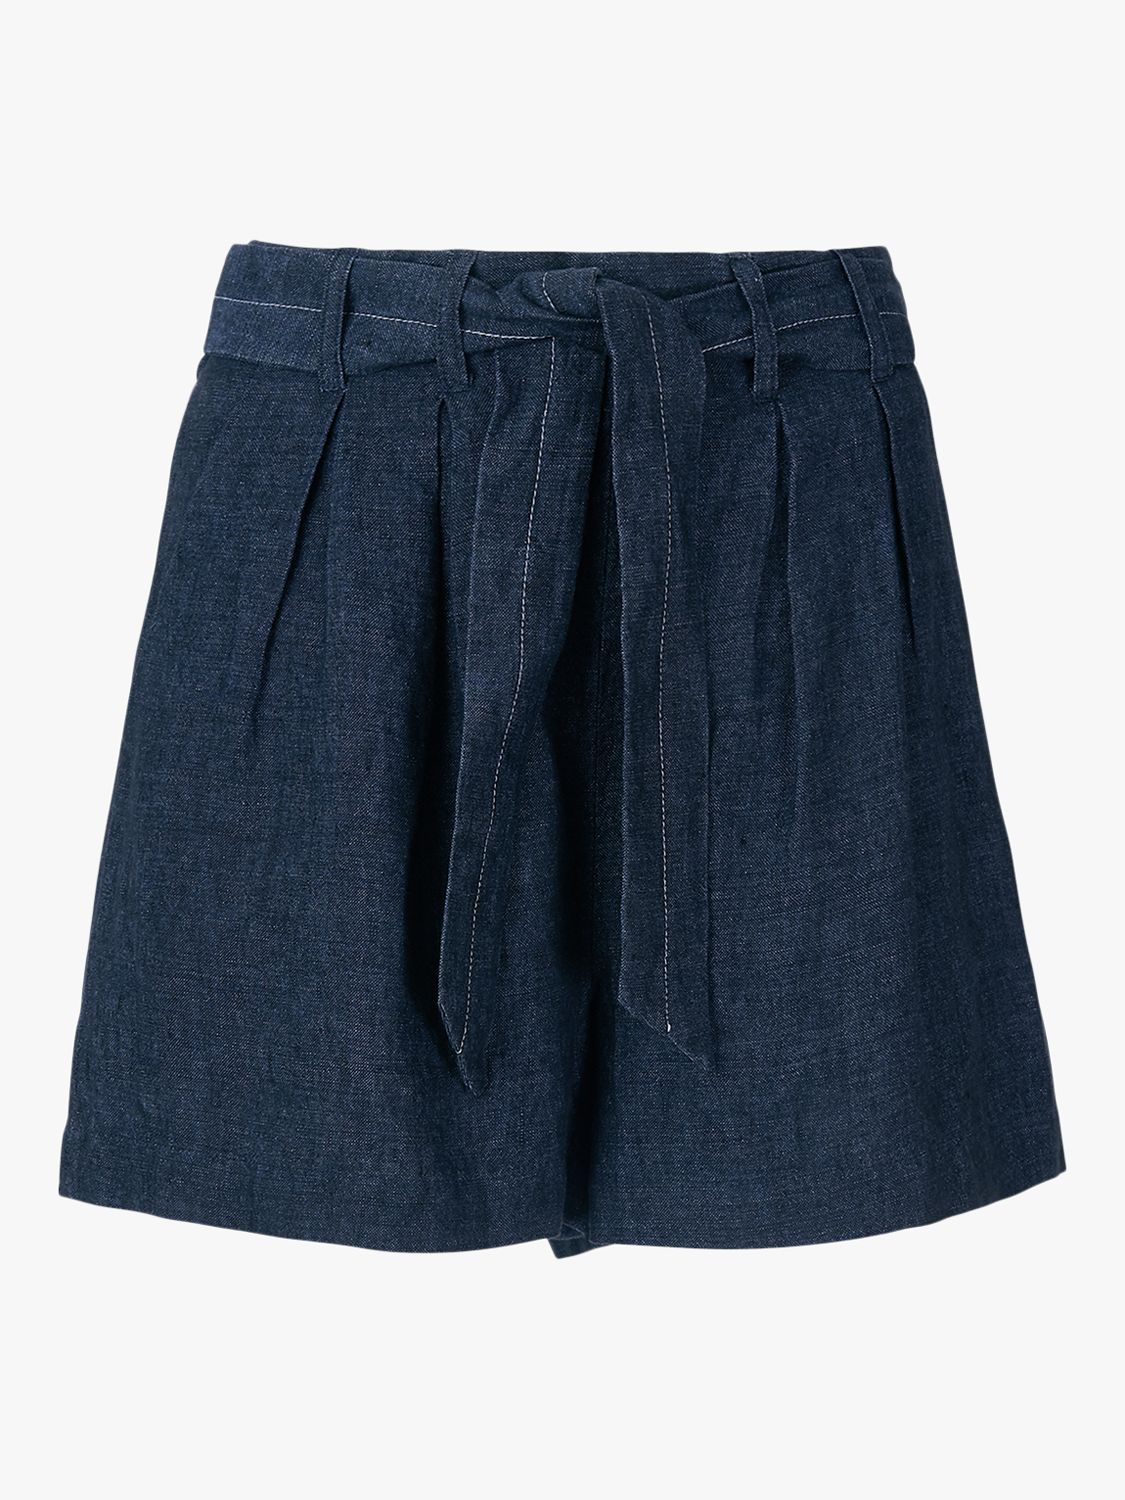 Whistles Indigo Linen Shorts, Navy